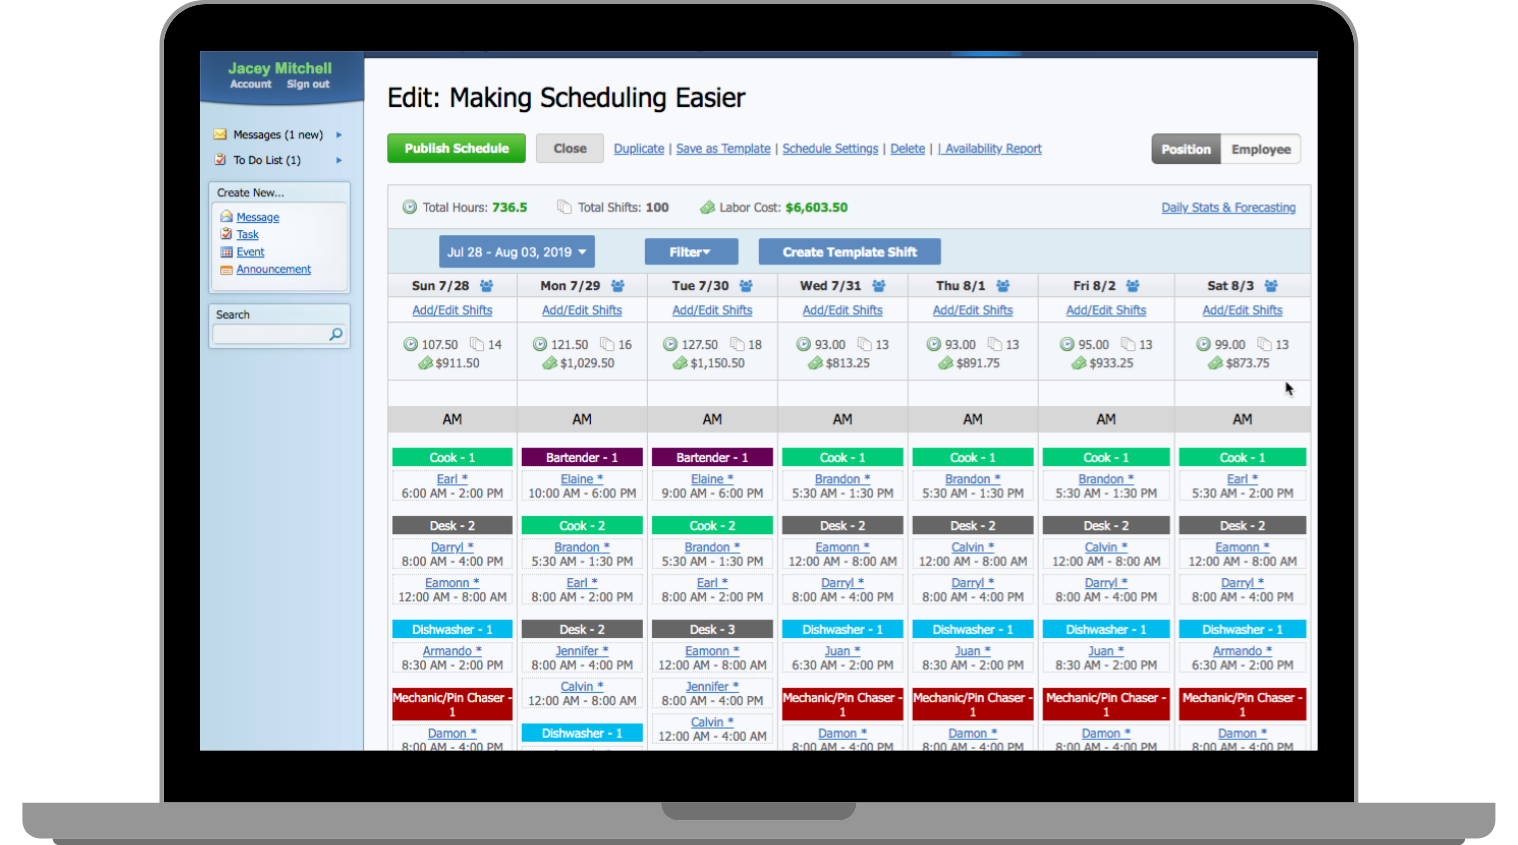 Online employee scheduling and manager log book